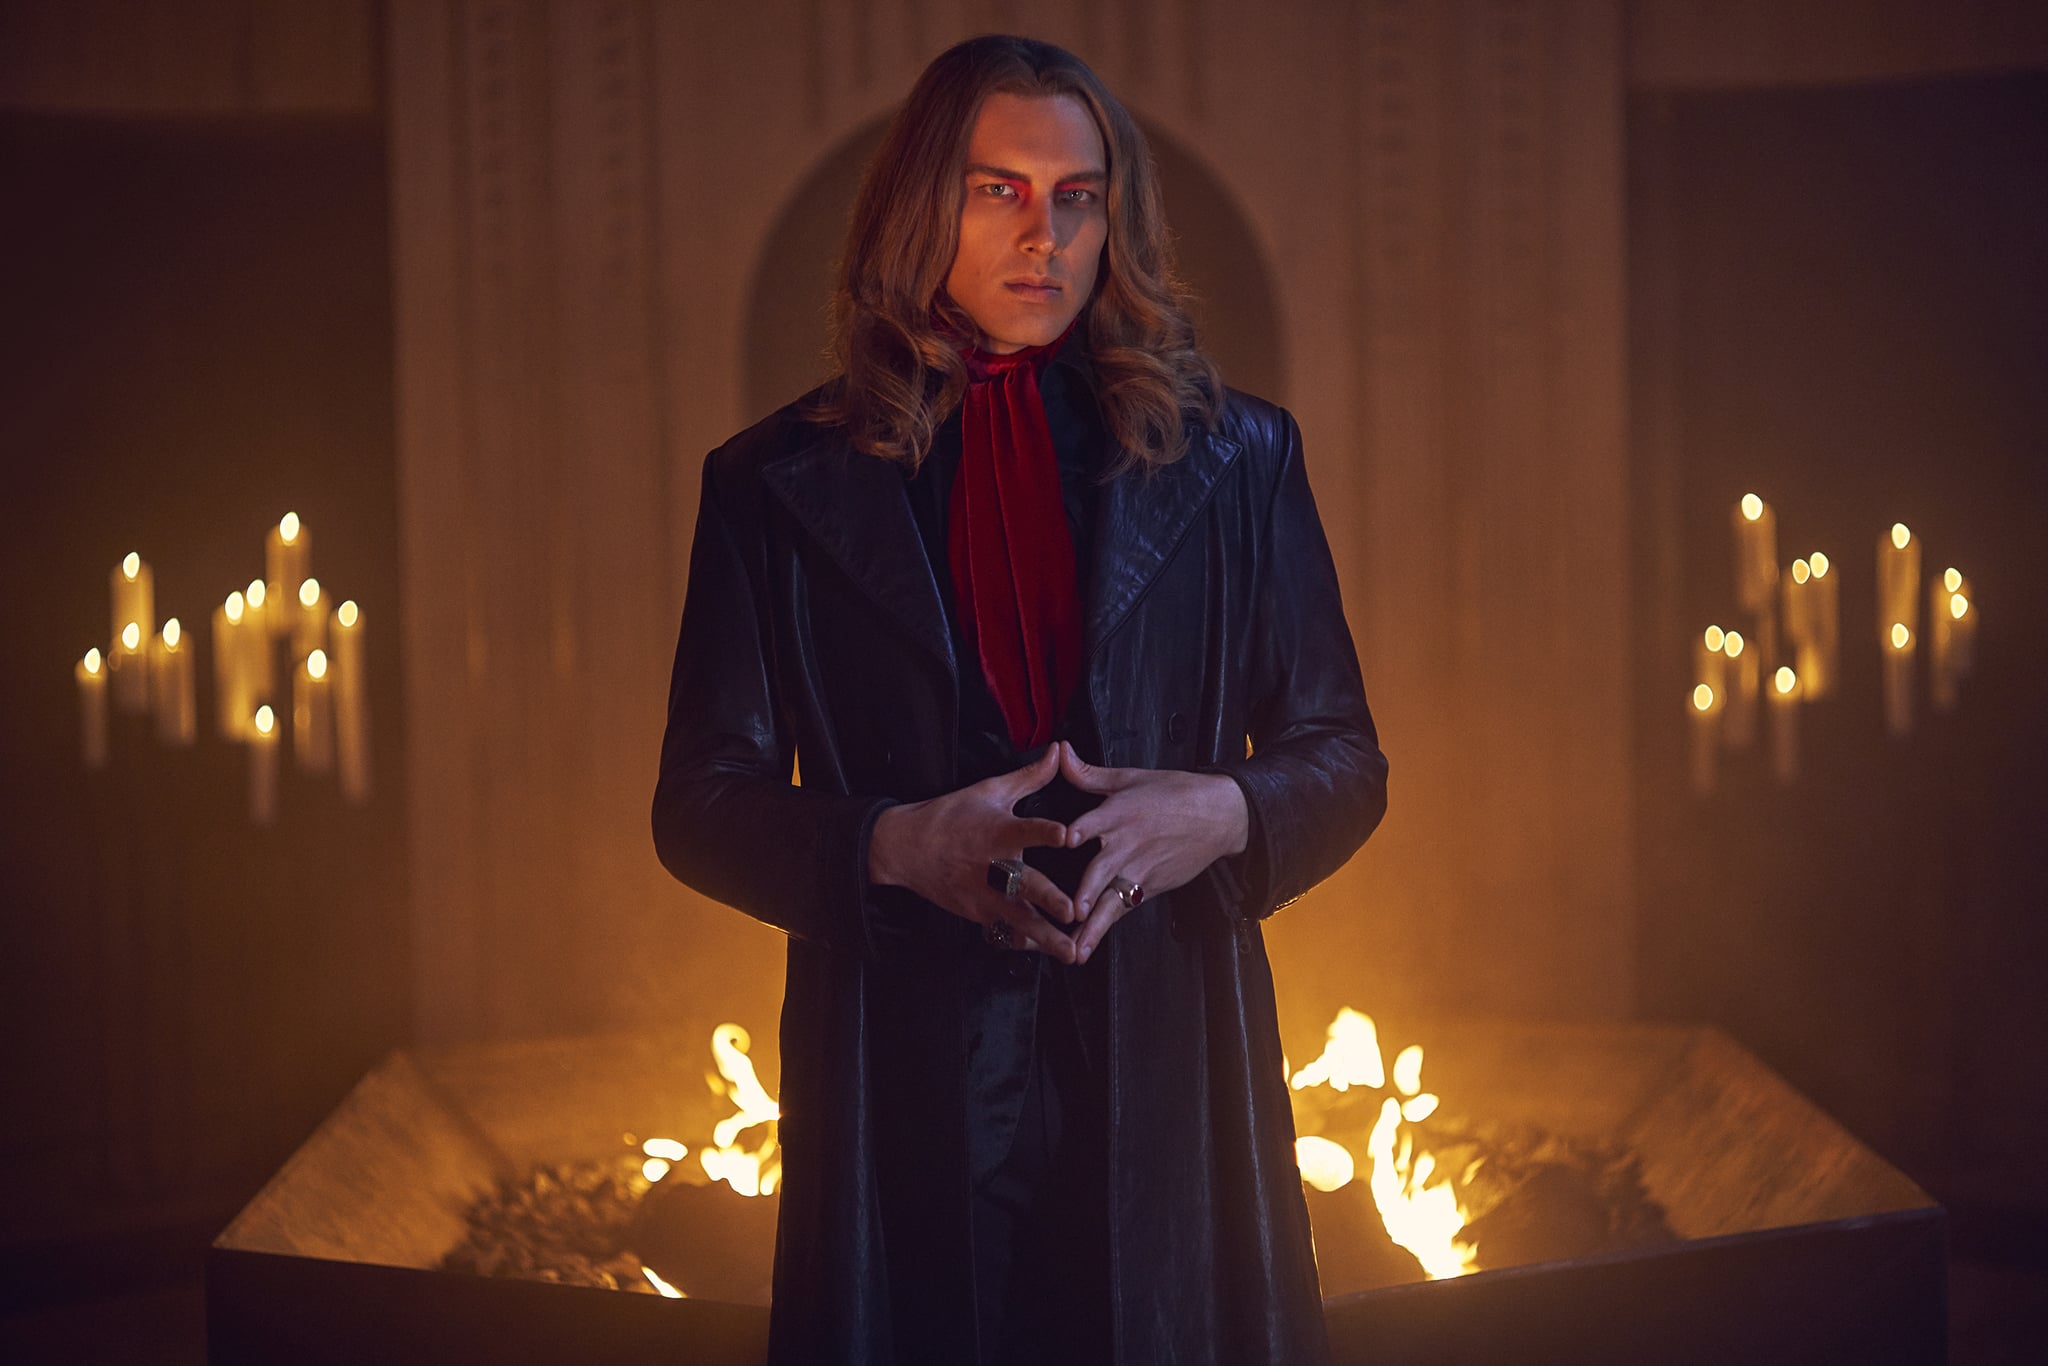 AMERICAN HORROR STORY: APOCALYPSE -- Pictured: Cody Fern as Michael Langdon. CR: Kurt Iswarienko/FX